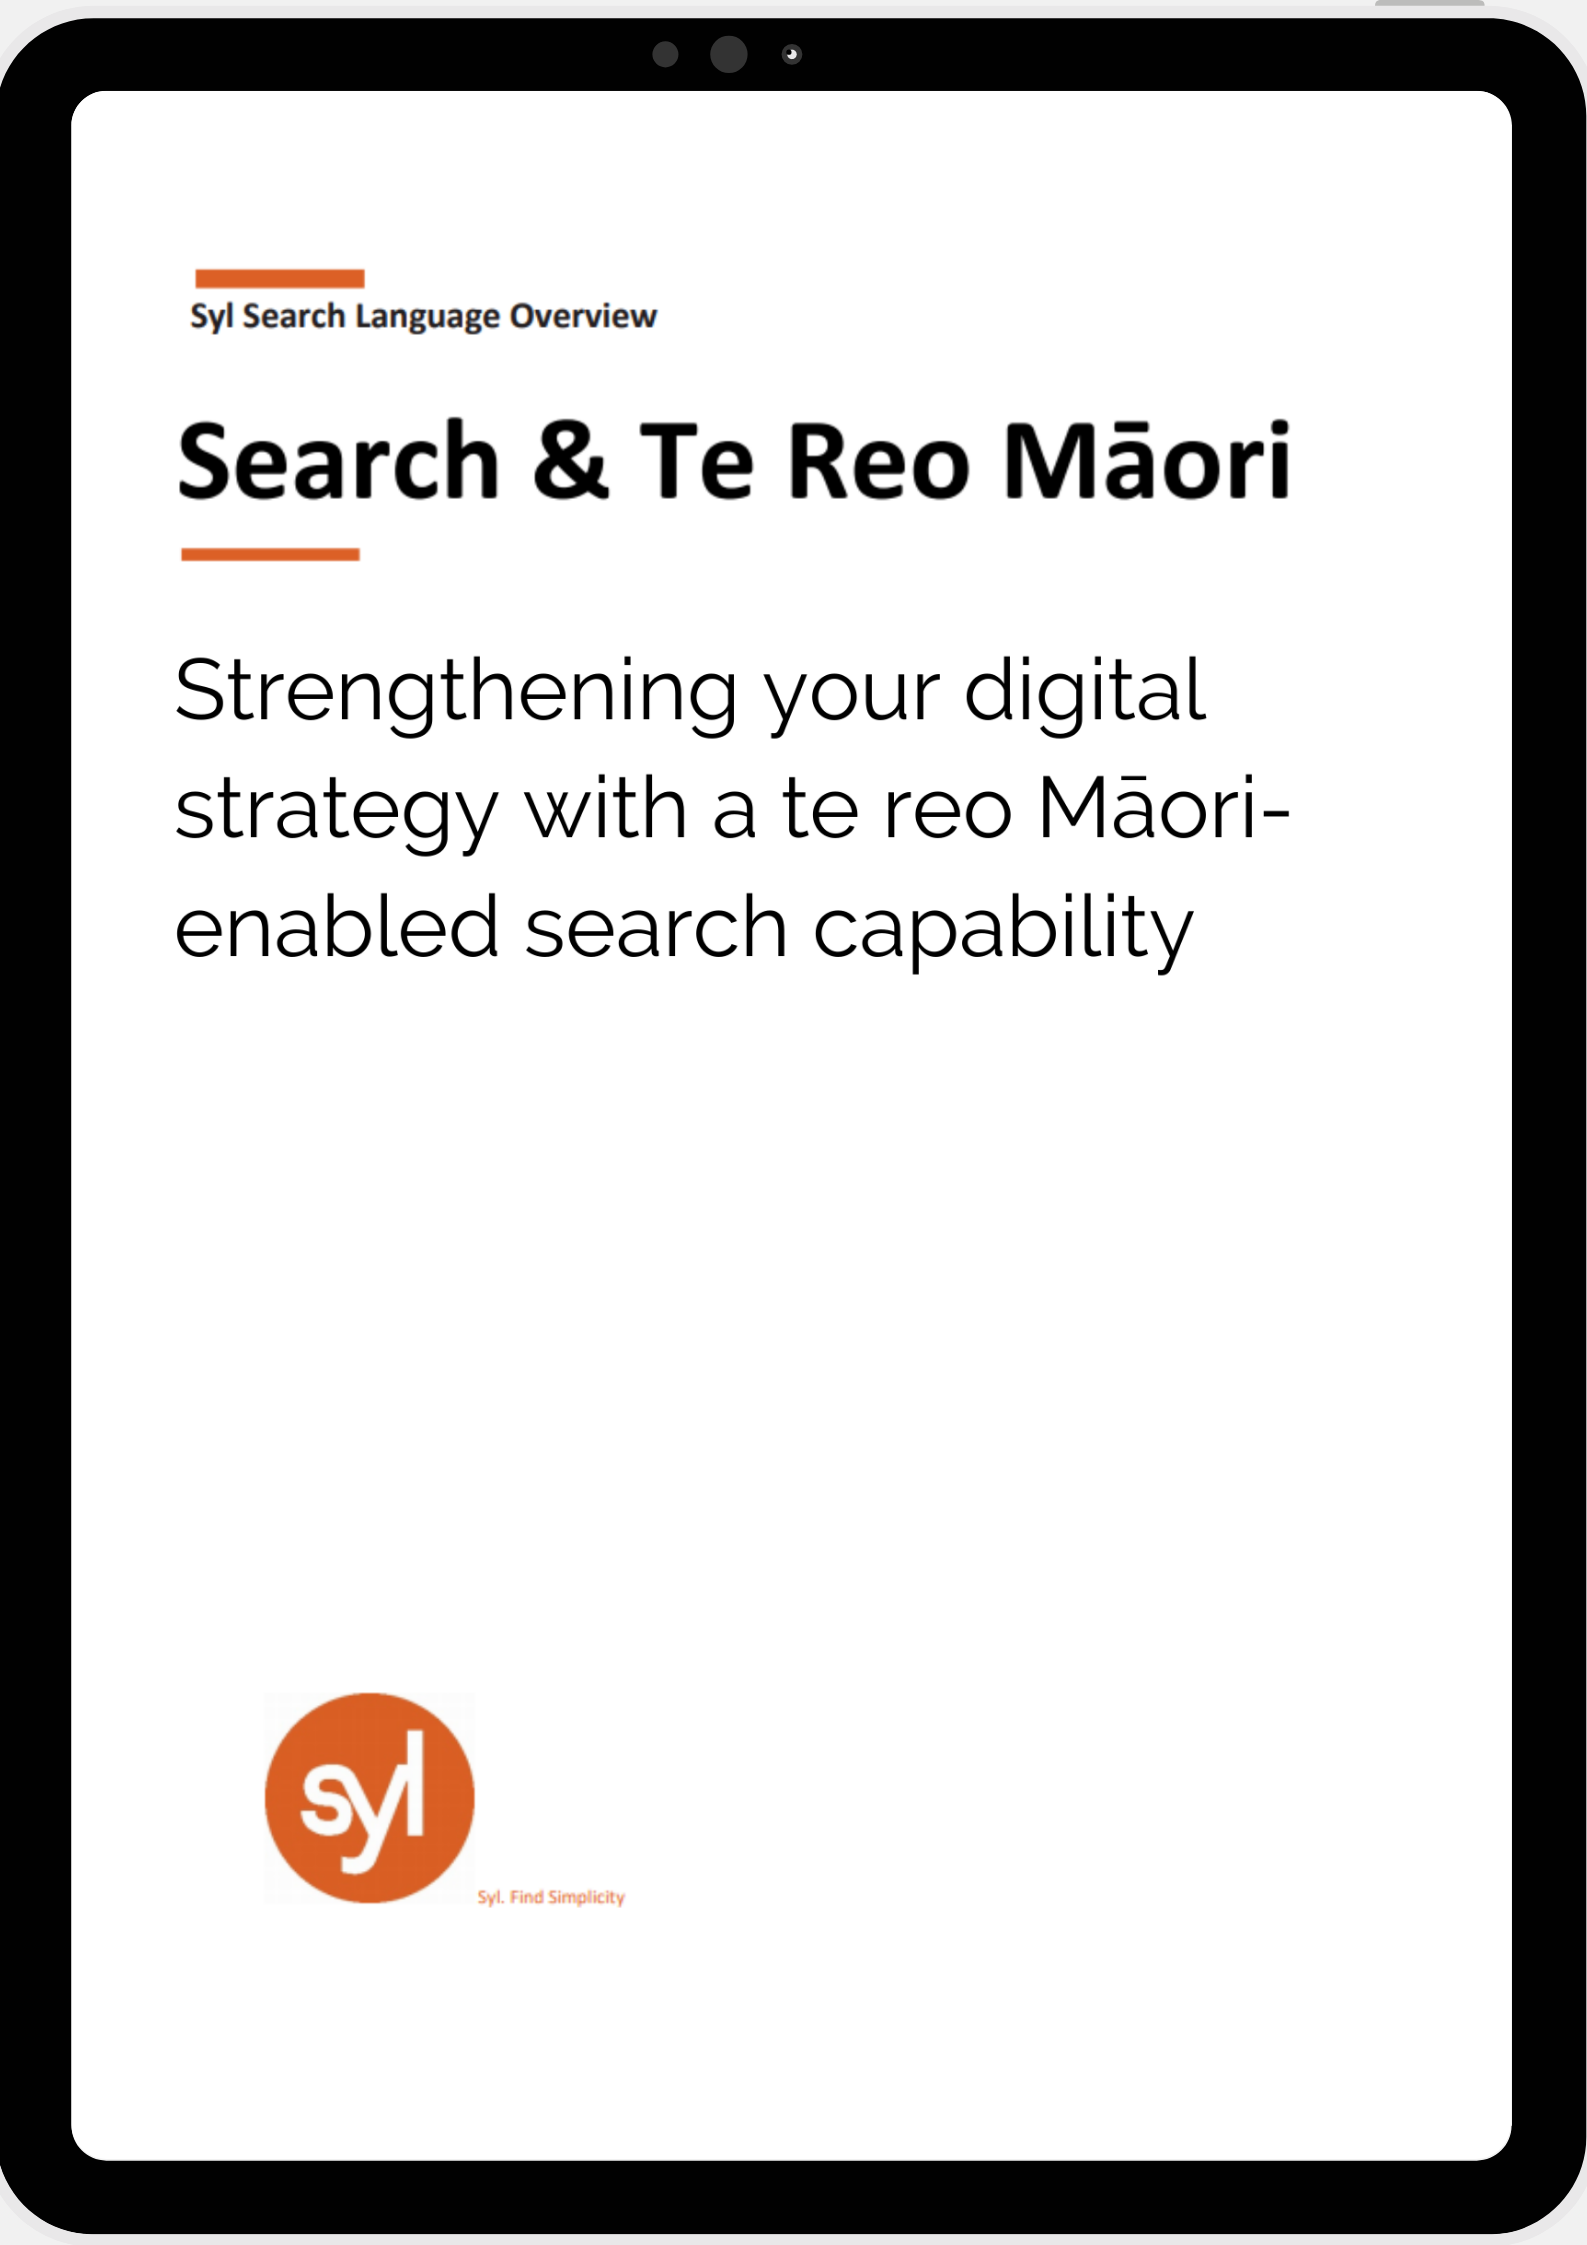 Strengthening your digital strategy with a te reo Māori-enabled search capability (1)